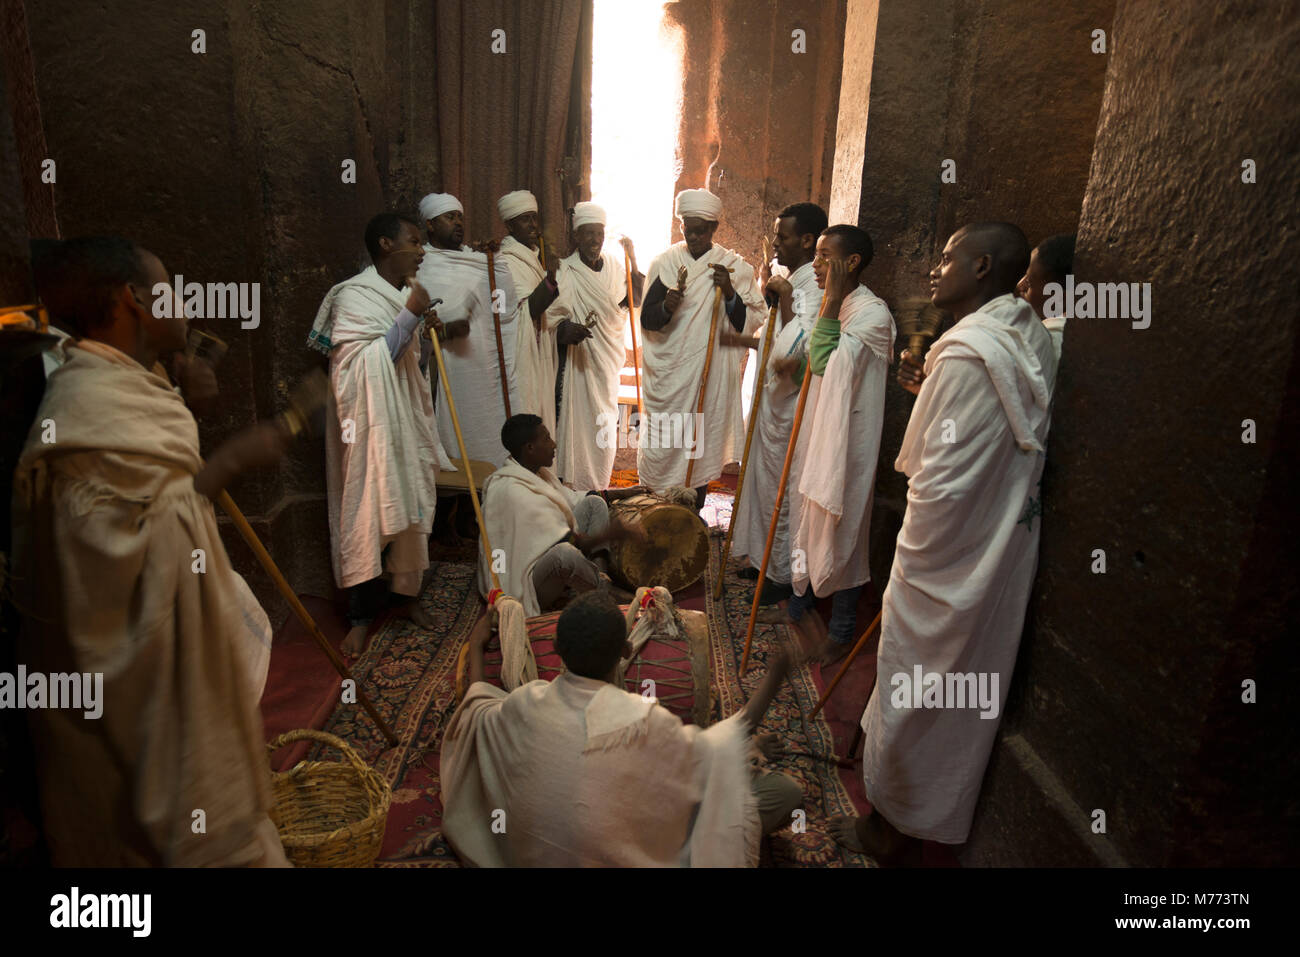 Priests wearing white robes are chanting to the beat of a drum inside a rock-hewn church in Lalibela, Ethiopia. - Stock Image